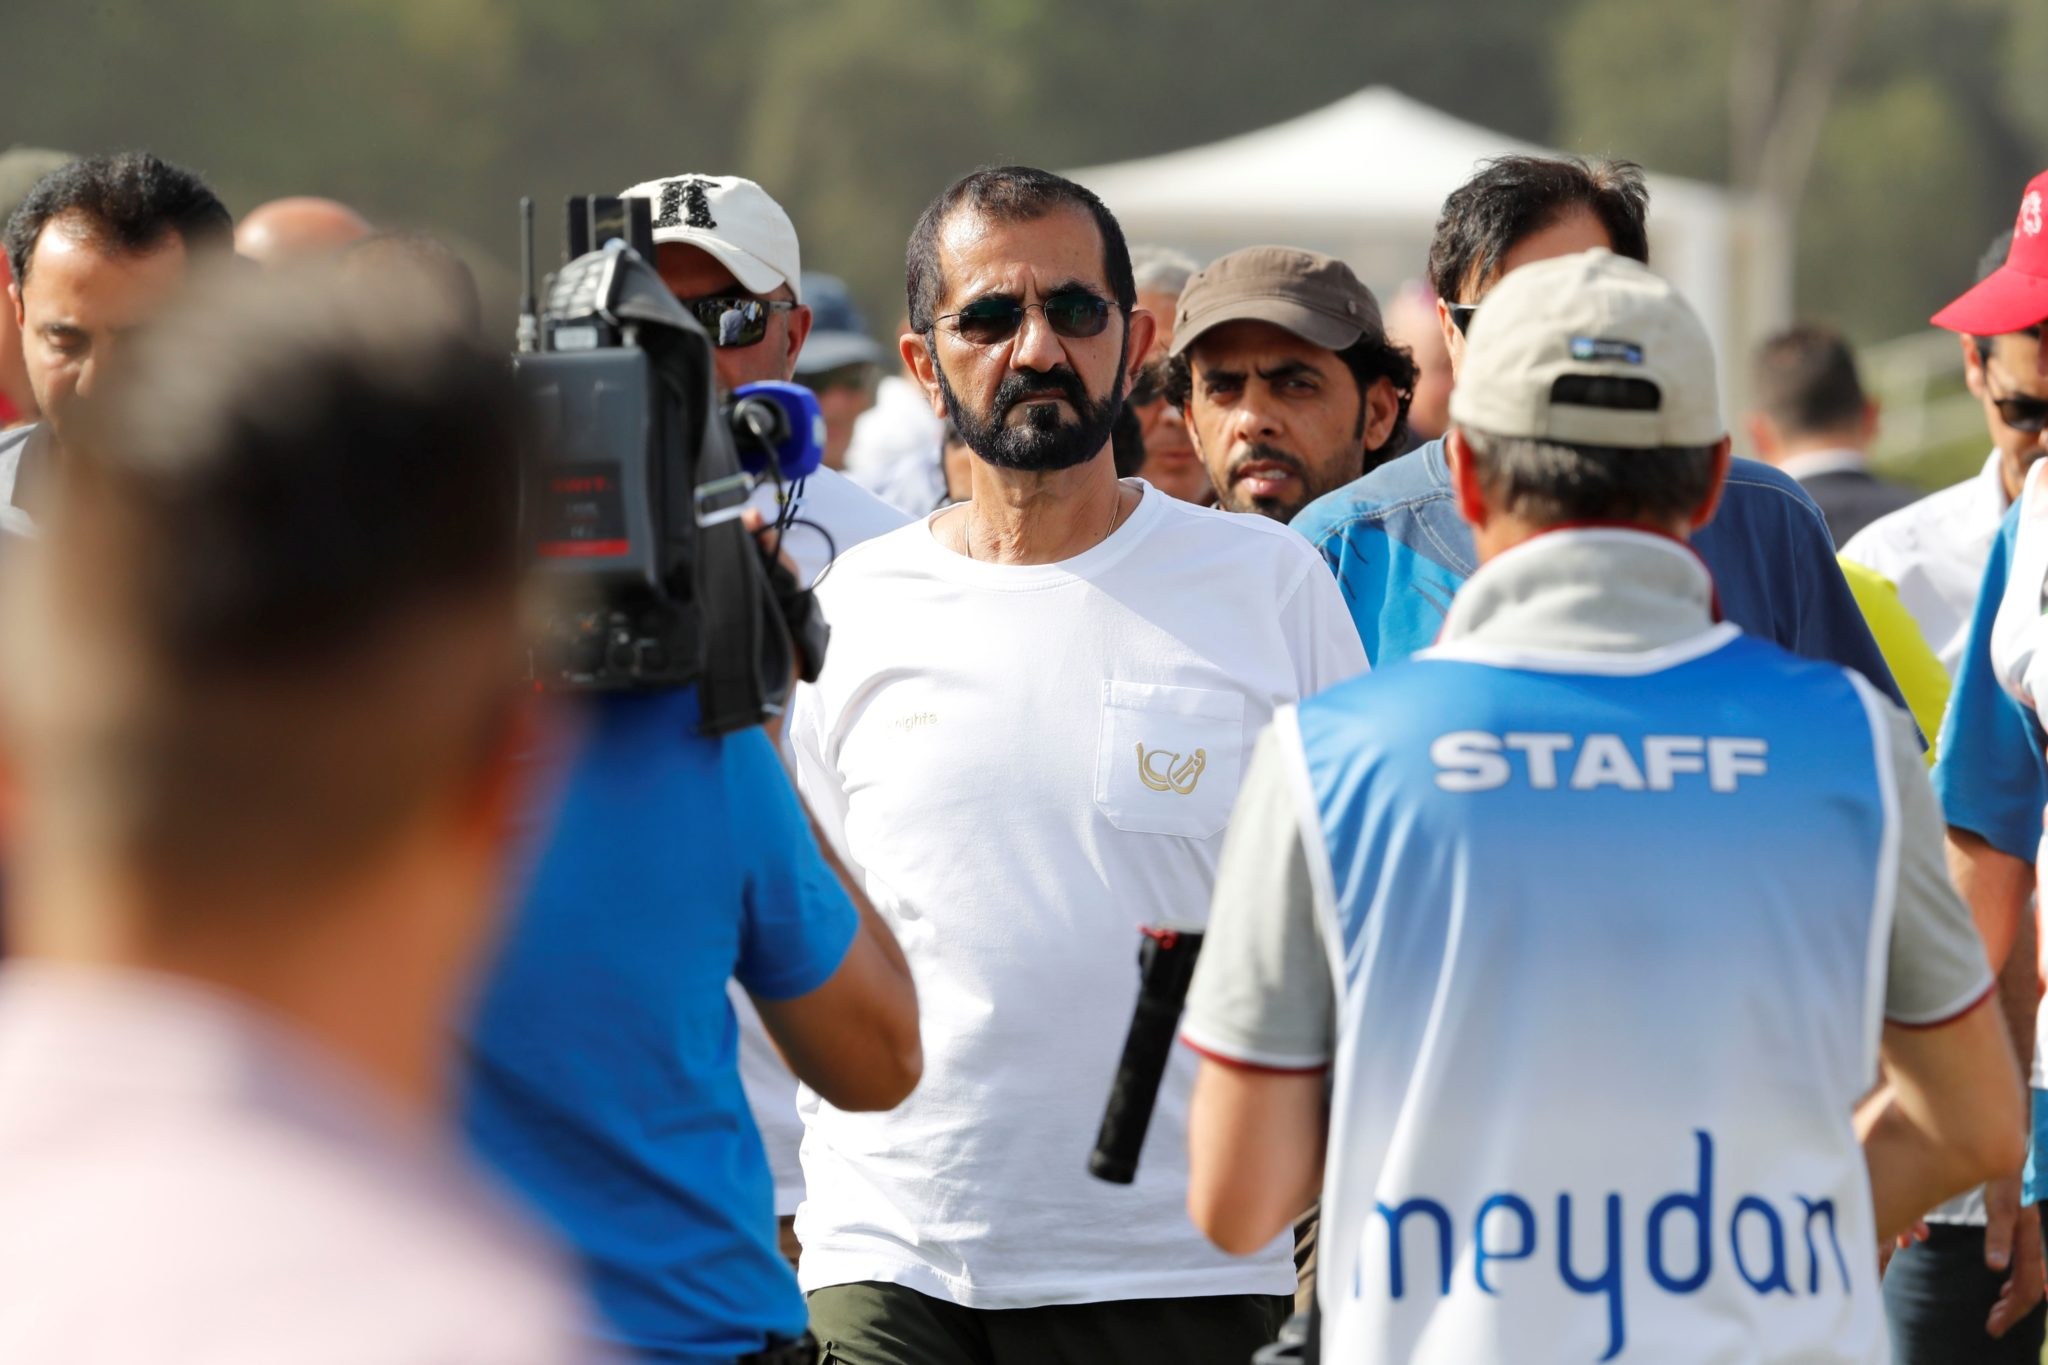 Endurance World Toscana Endurance LIfestyle. Sheikh Mohammed is a big supporter.